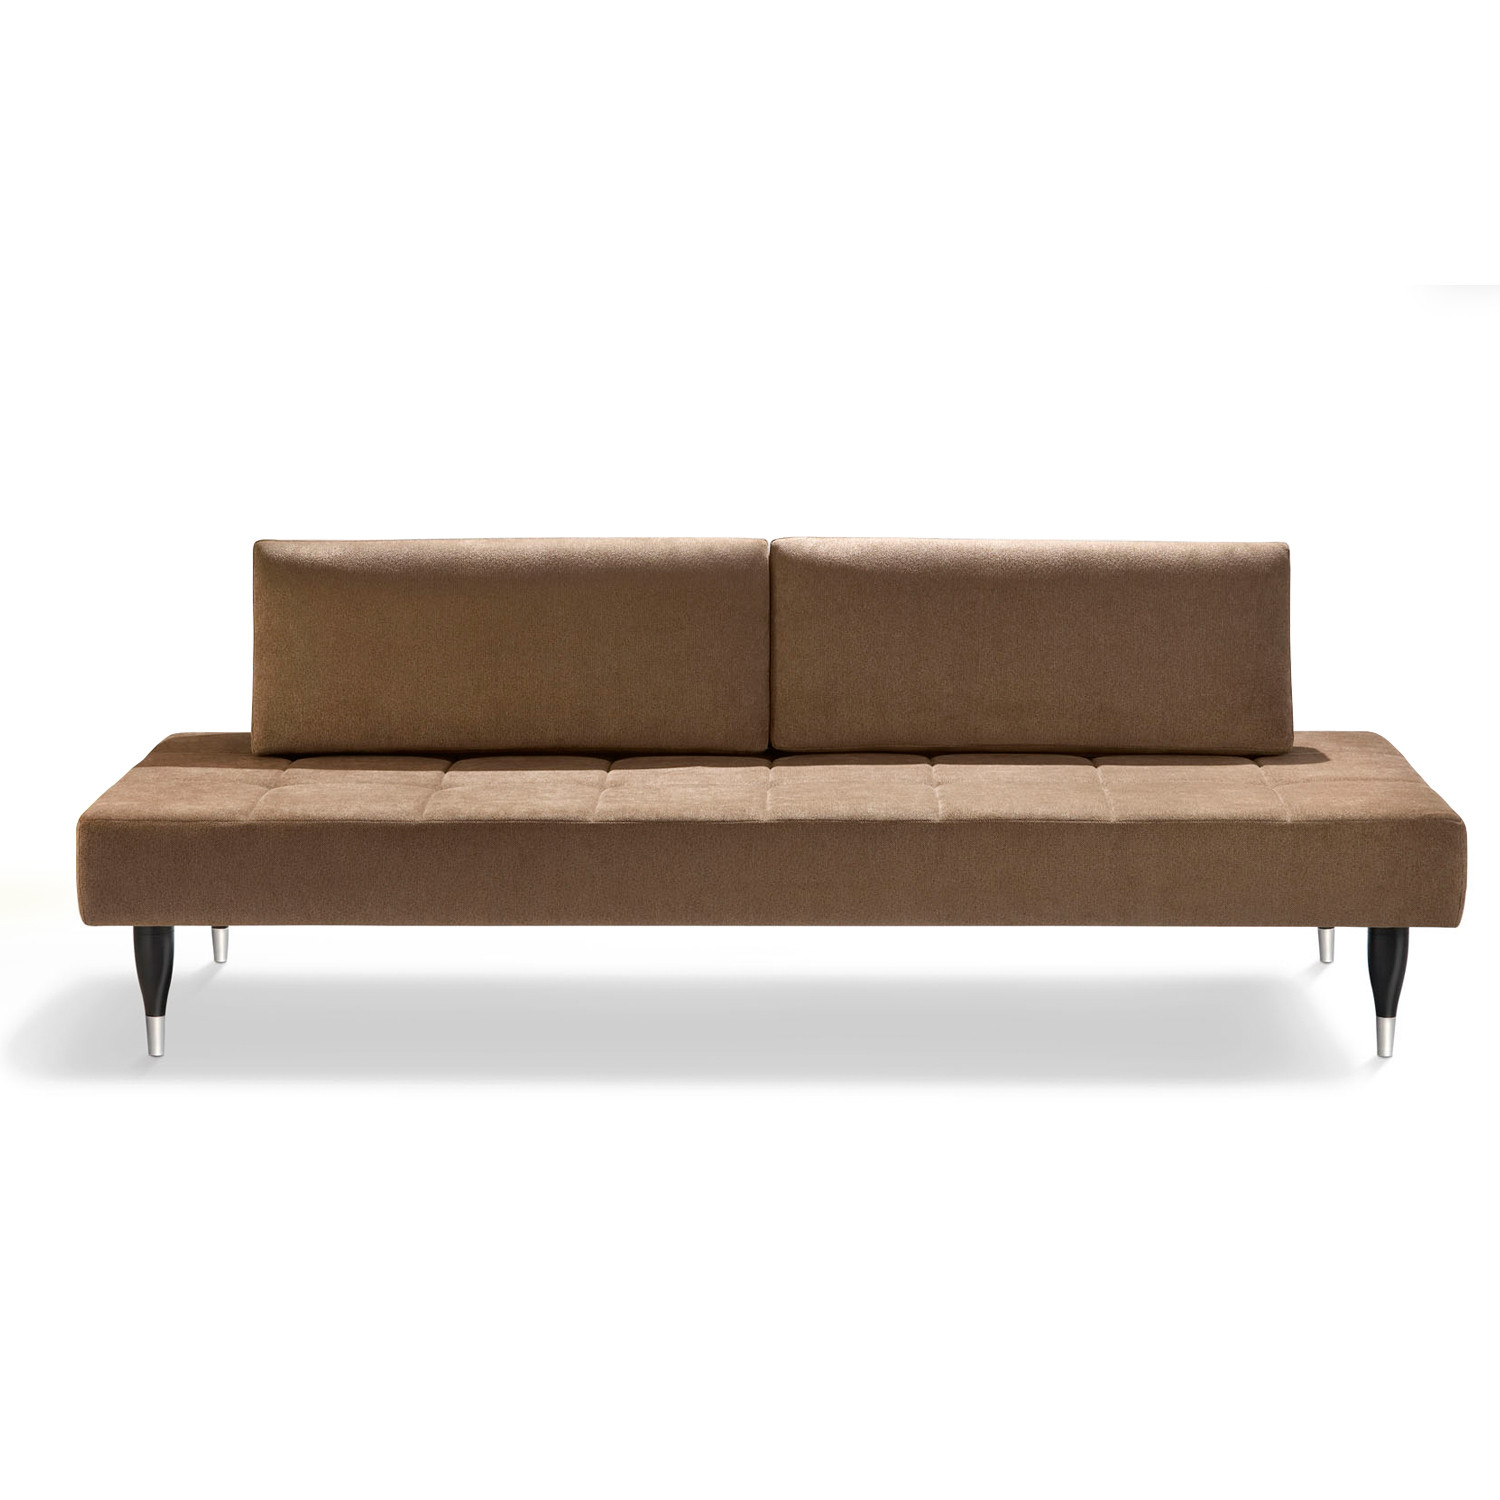 Salon Lounge Sofa